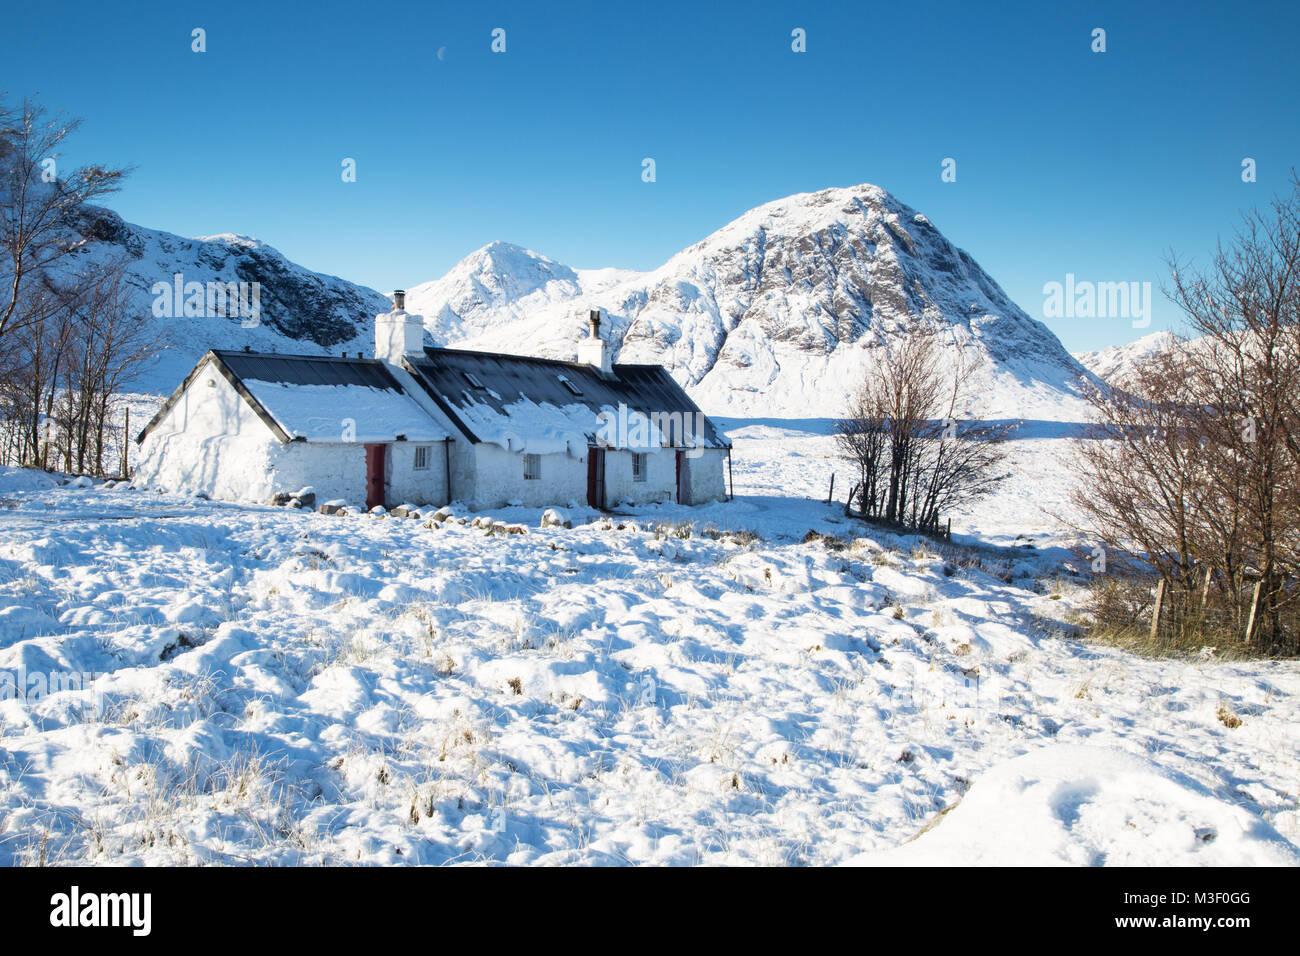 Black Rock Cottage, at the foot of the Glencoe Ski Resort with Buachaille Etve Mor in the background. - Stock Image